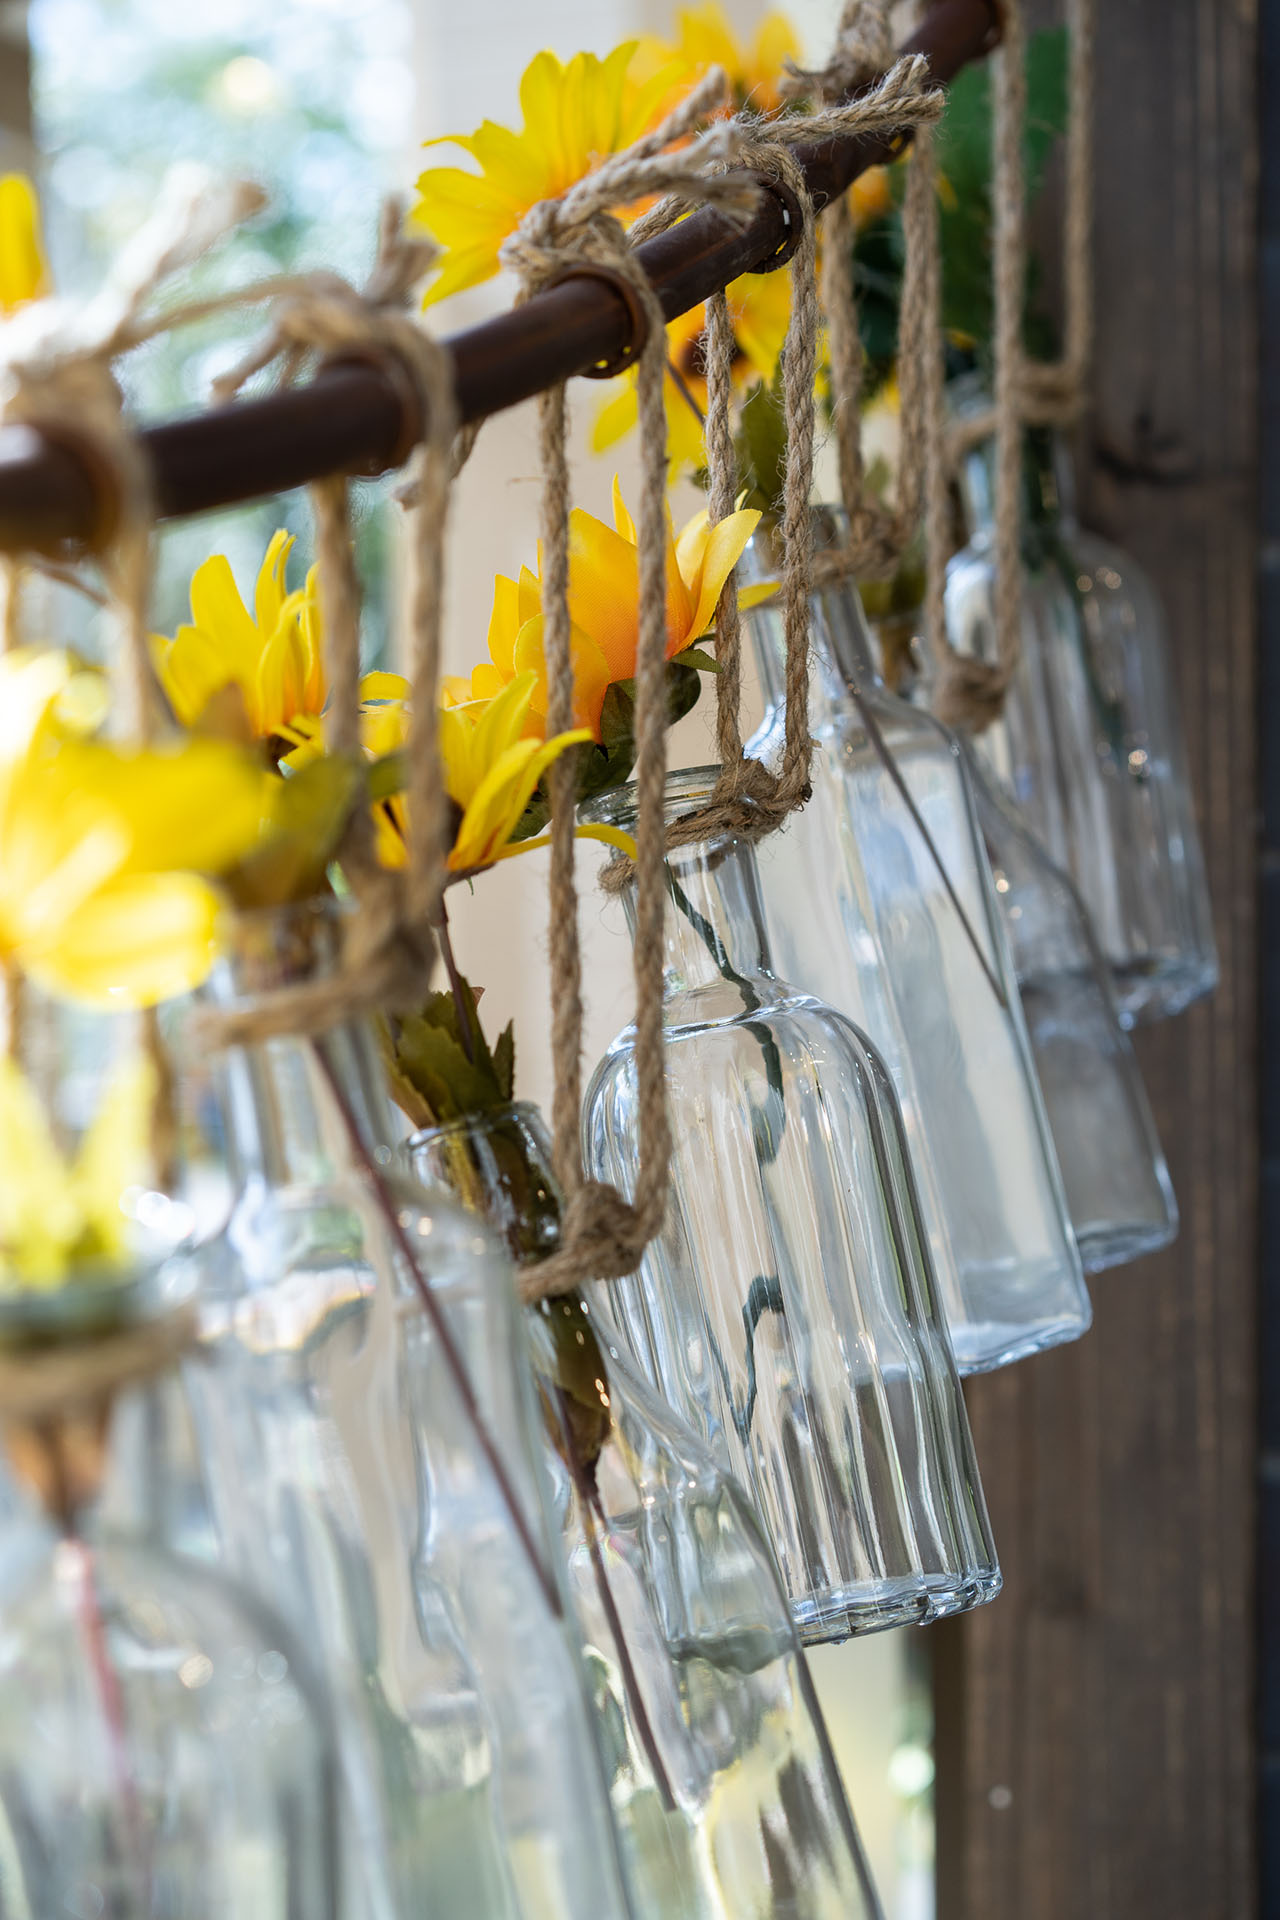 Bottle and floral arrangement in the shop window.